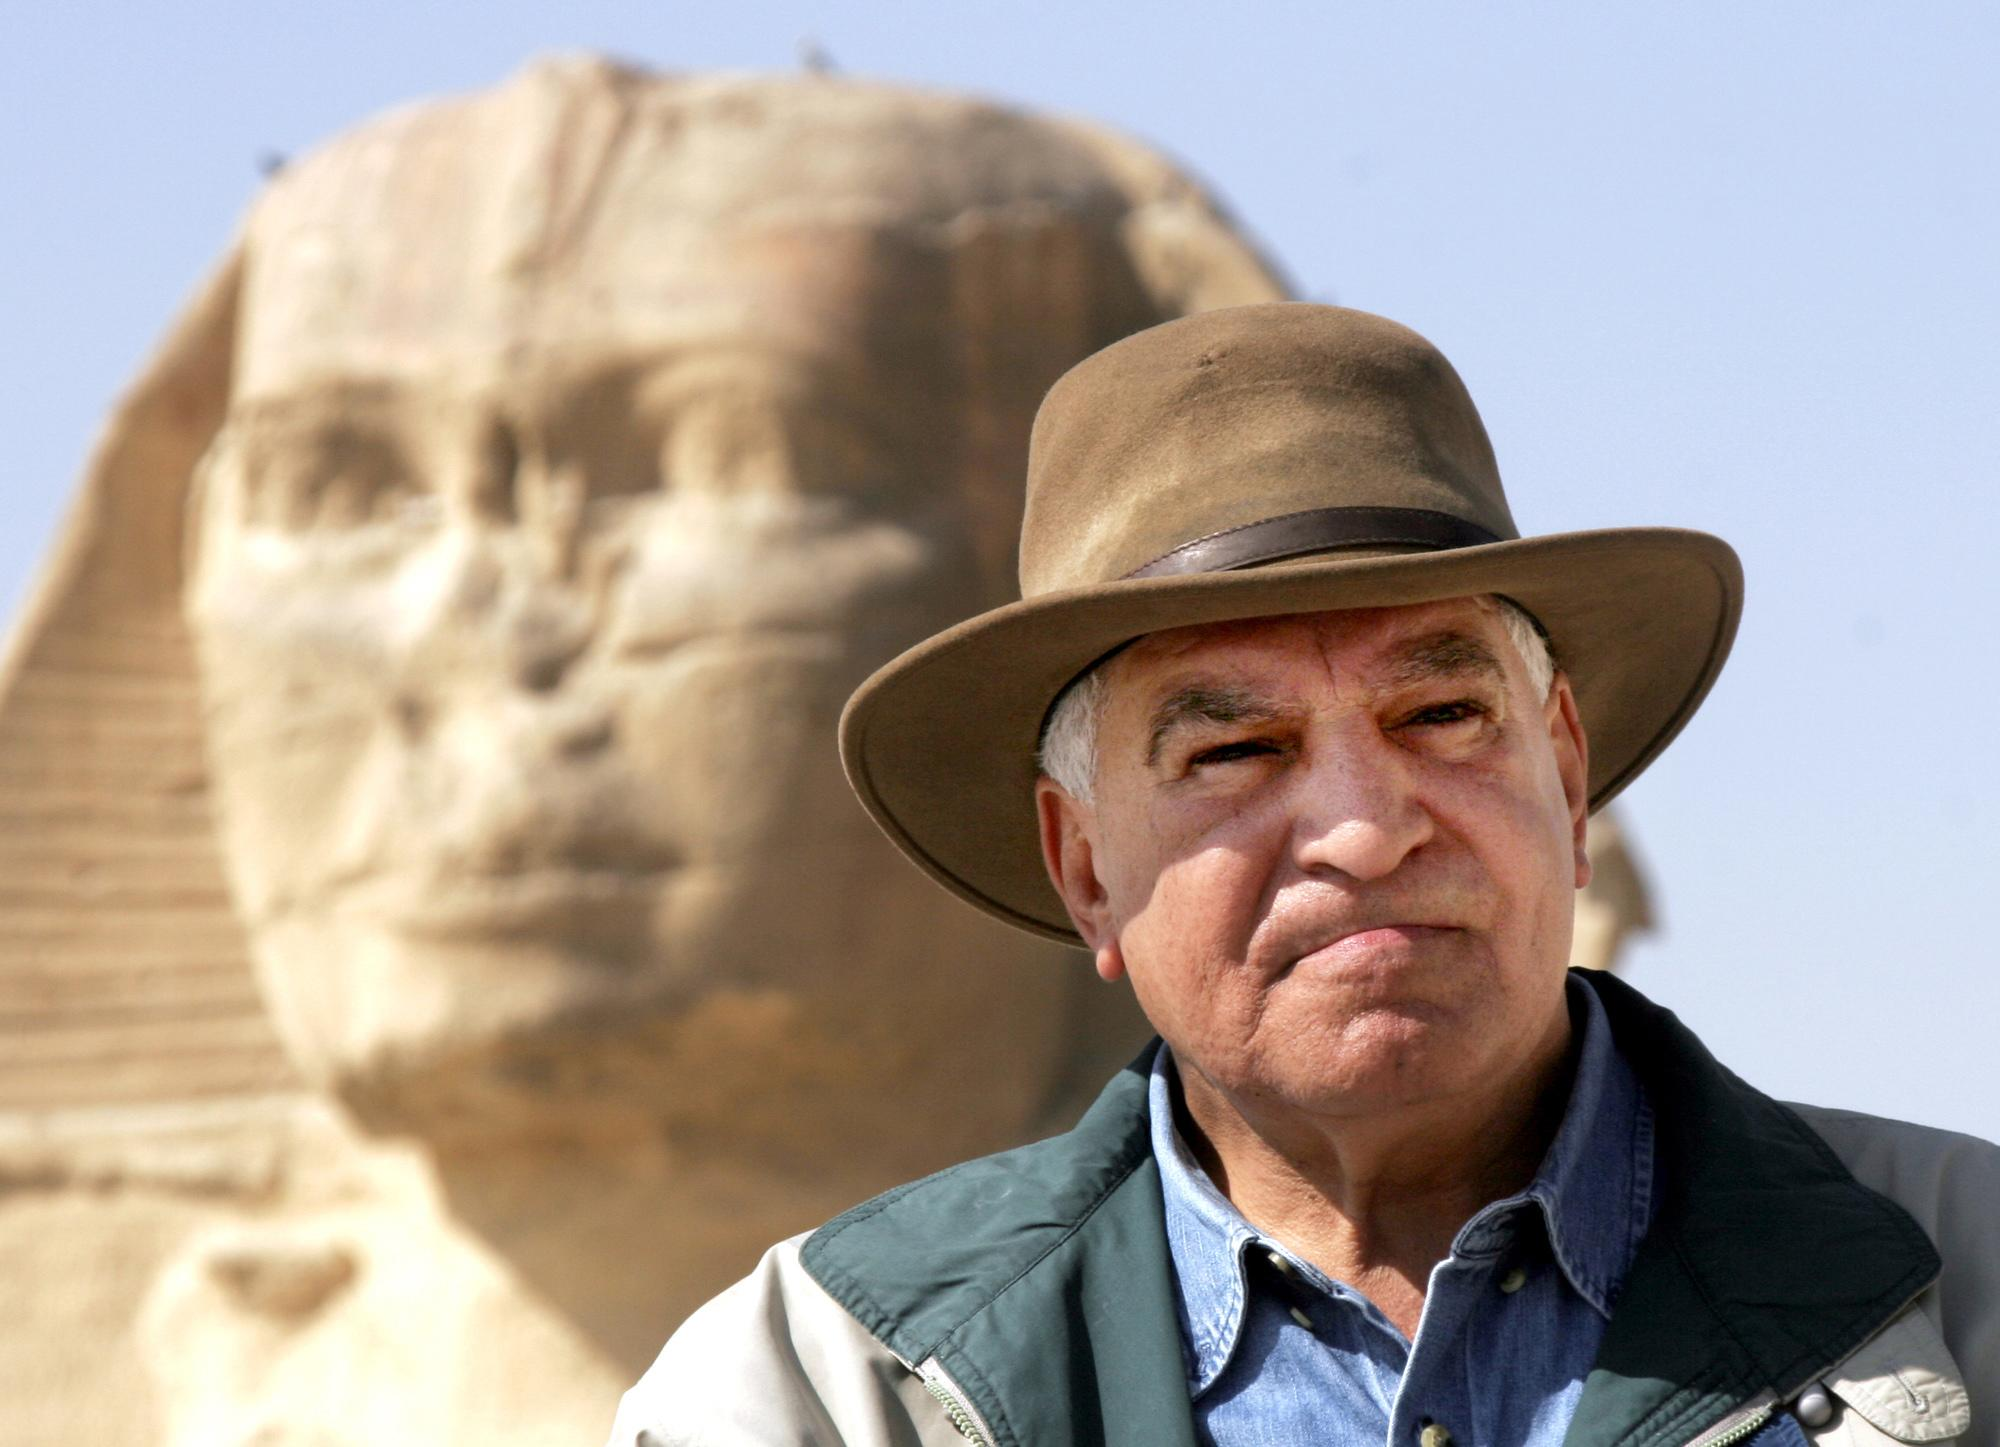 Egypt antiquities showman tells the world it's safe to visit